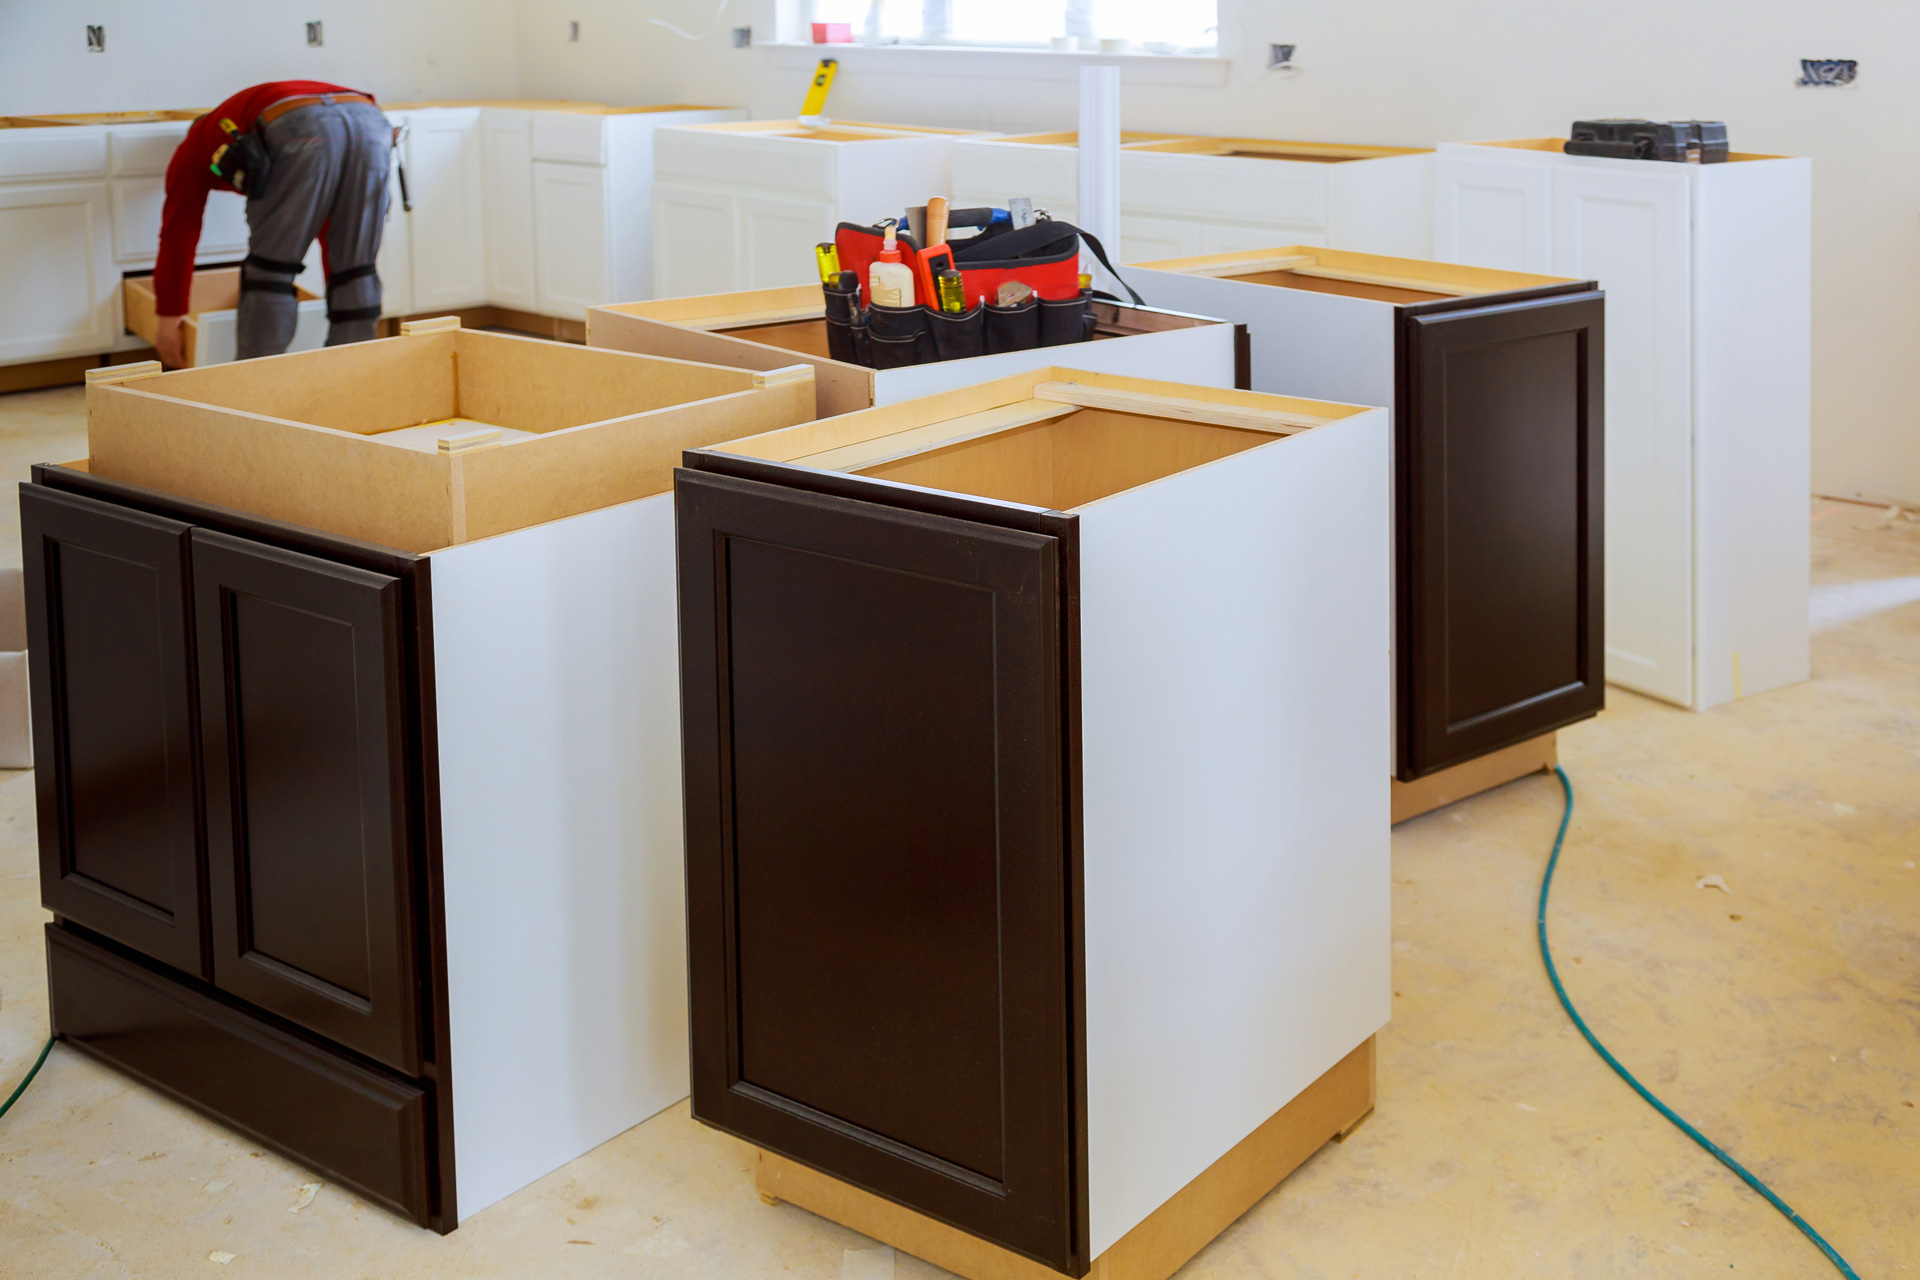 Pre-Assembled-Cabinets-CabinetCorp